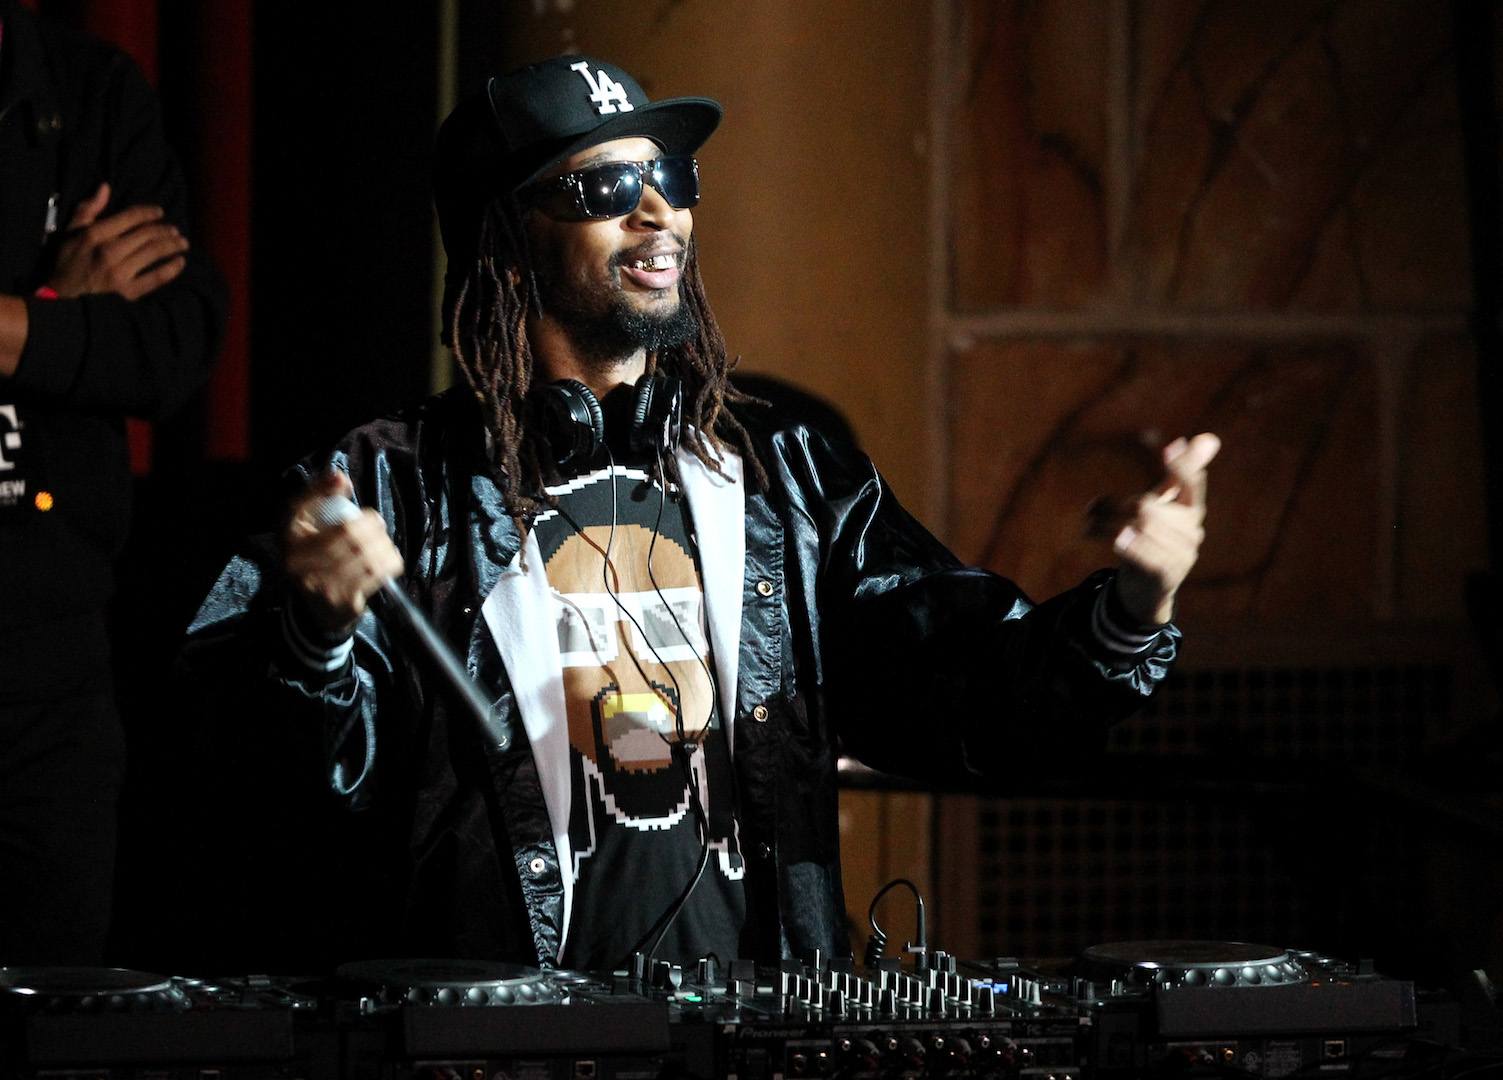 LOS ANGELES, CA - NOVEMBER 10:  Hip-hop artist Lil Jon performs at T-Mobile Un-carrier X Launch Celebration at The Shrine Auditorium on November 10, 2015 in Los Angeles, California.  (Photo by Tommaso Boddi/Getty Images for T-Mobile)